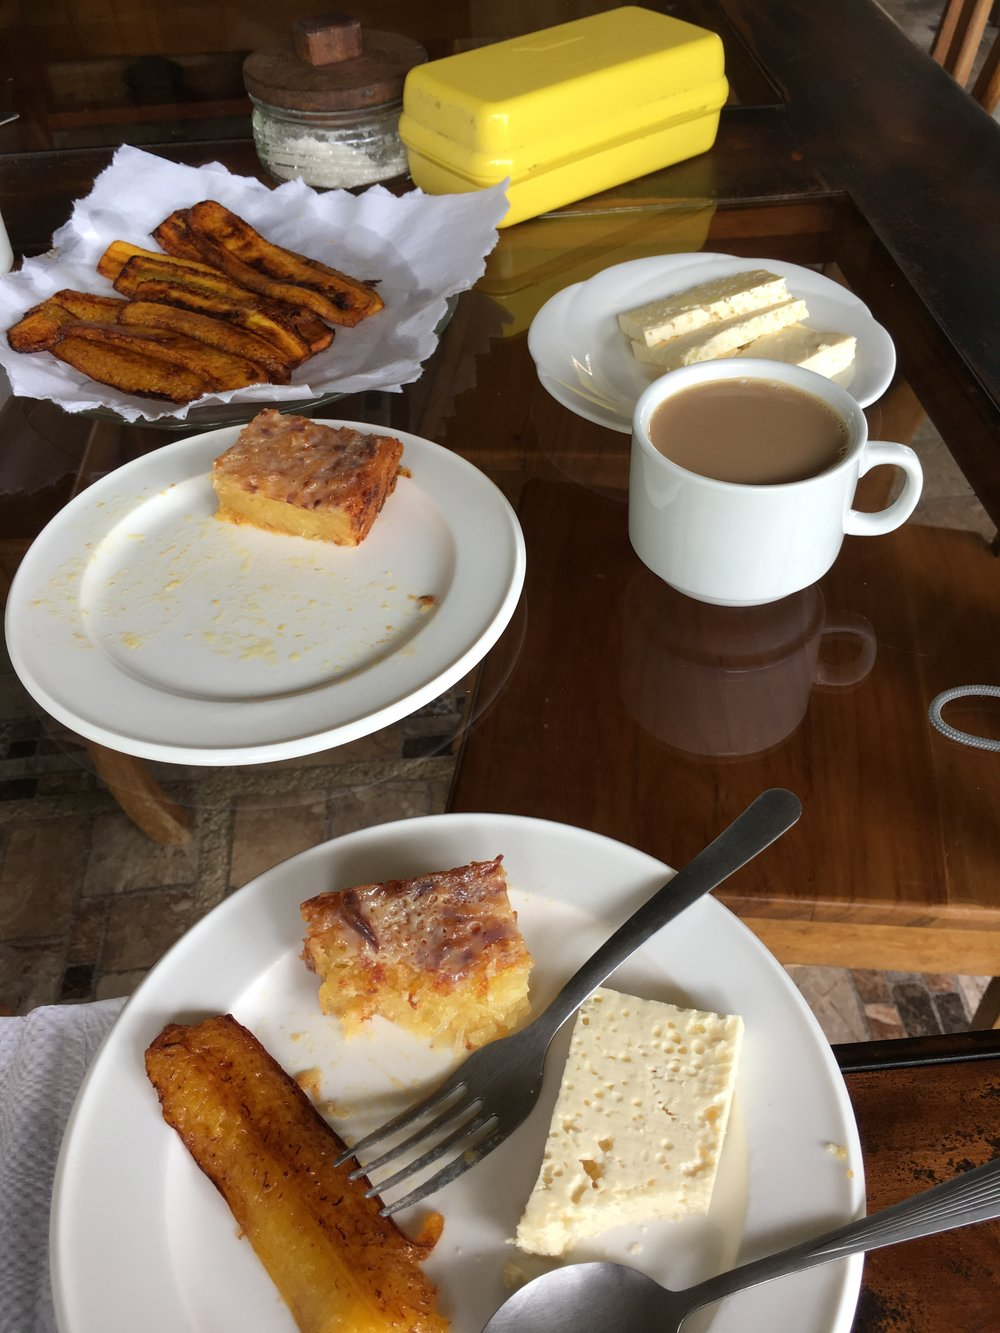 Yuca cakes, fried plantains, and farmer's cheese